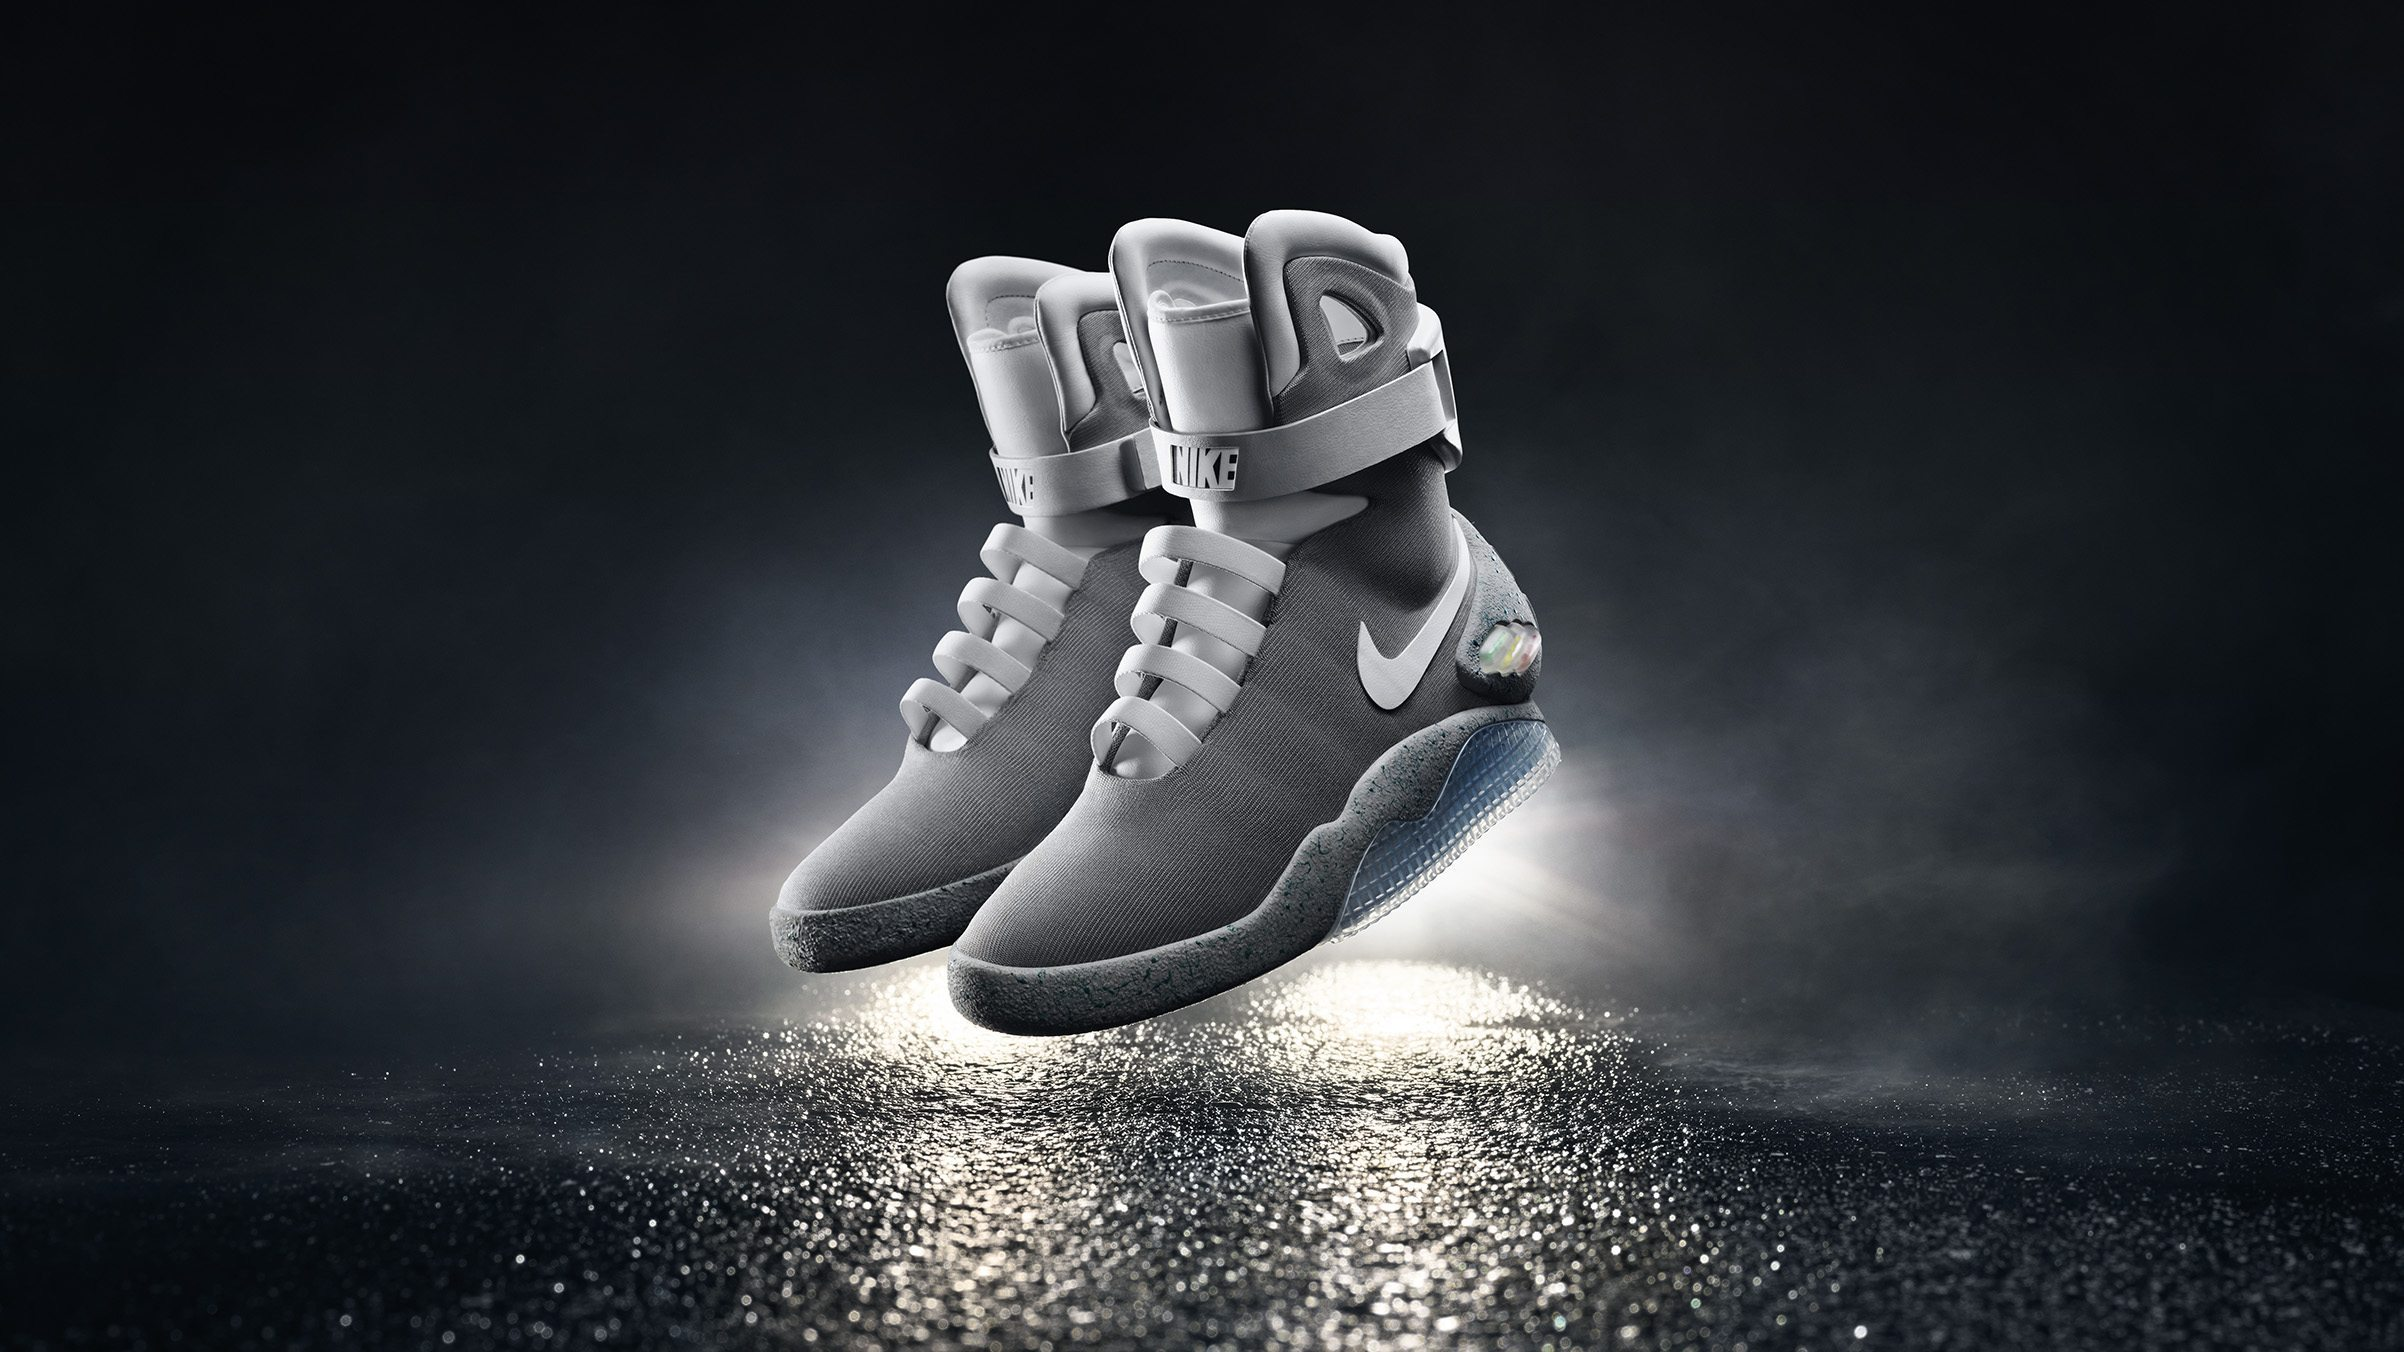 The 2015 Nike MAG 2